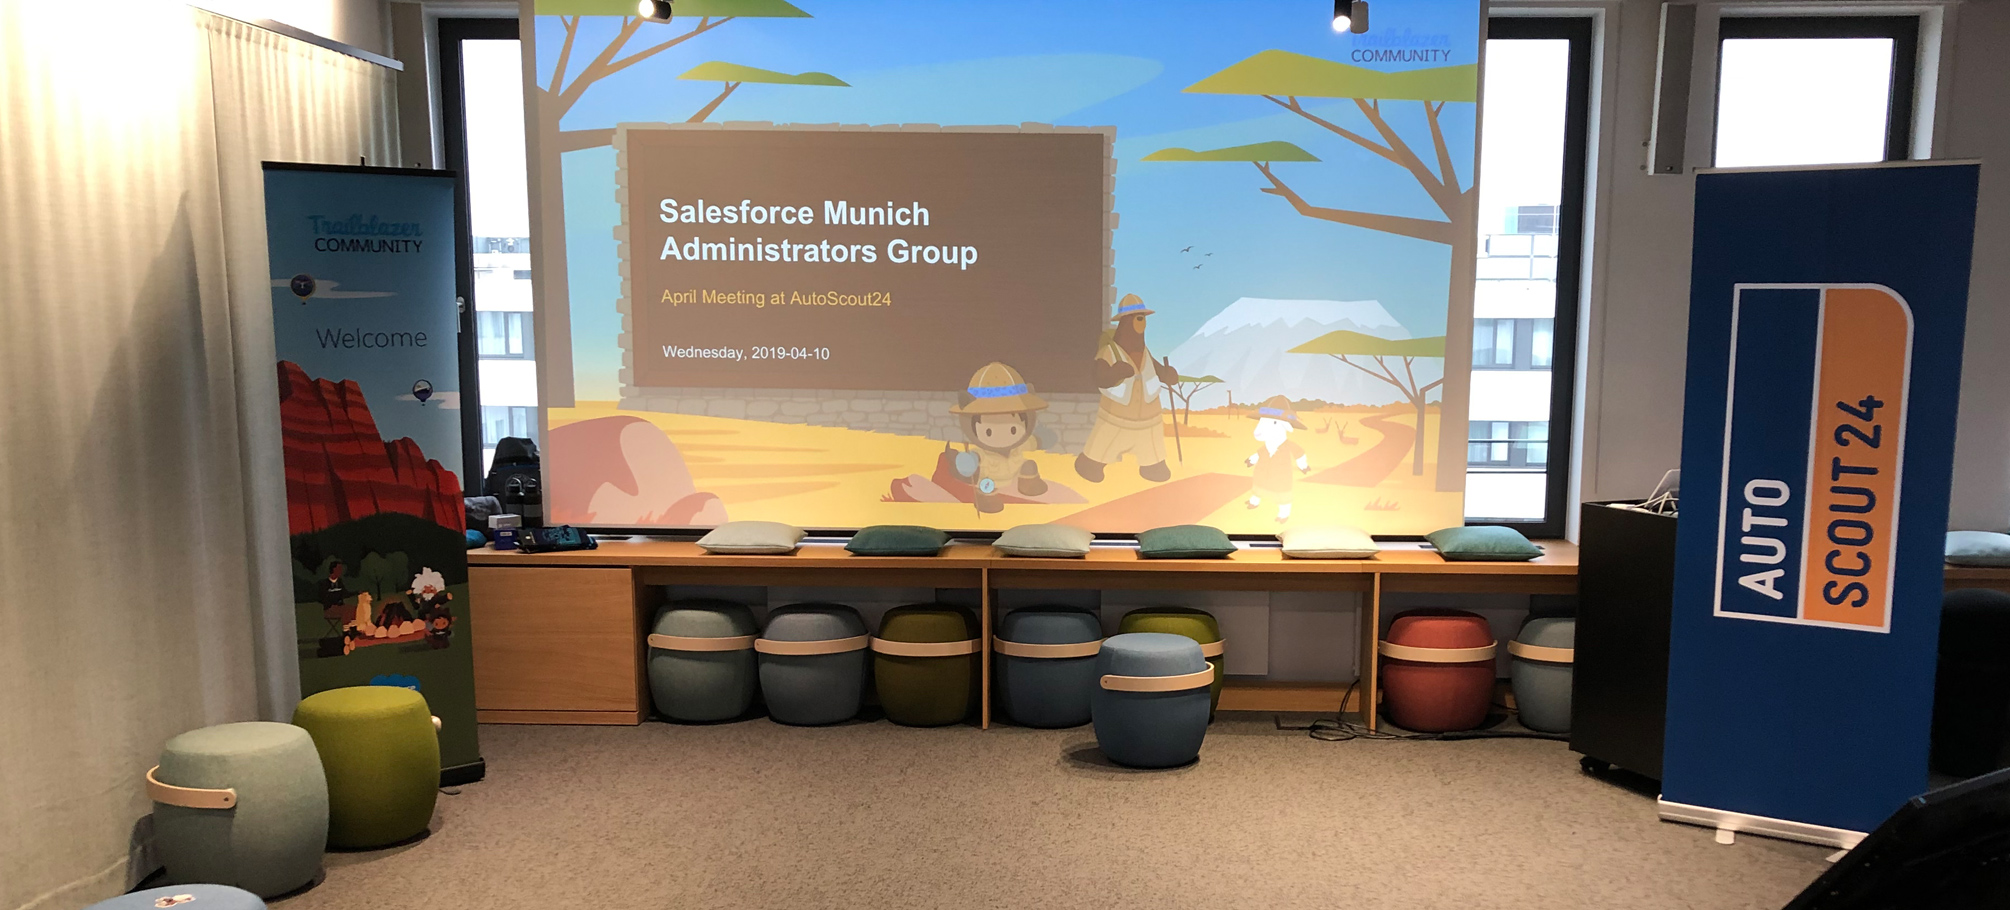 Salesforce Munich Administrators Group April Meeting